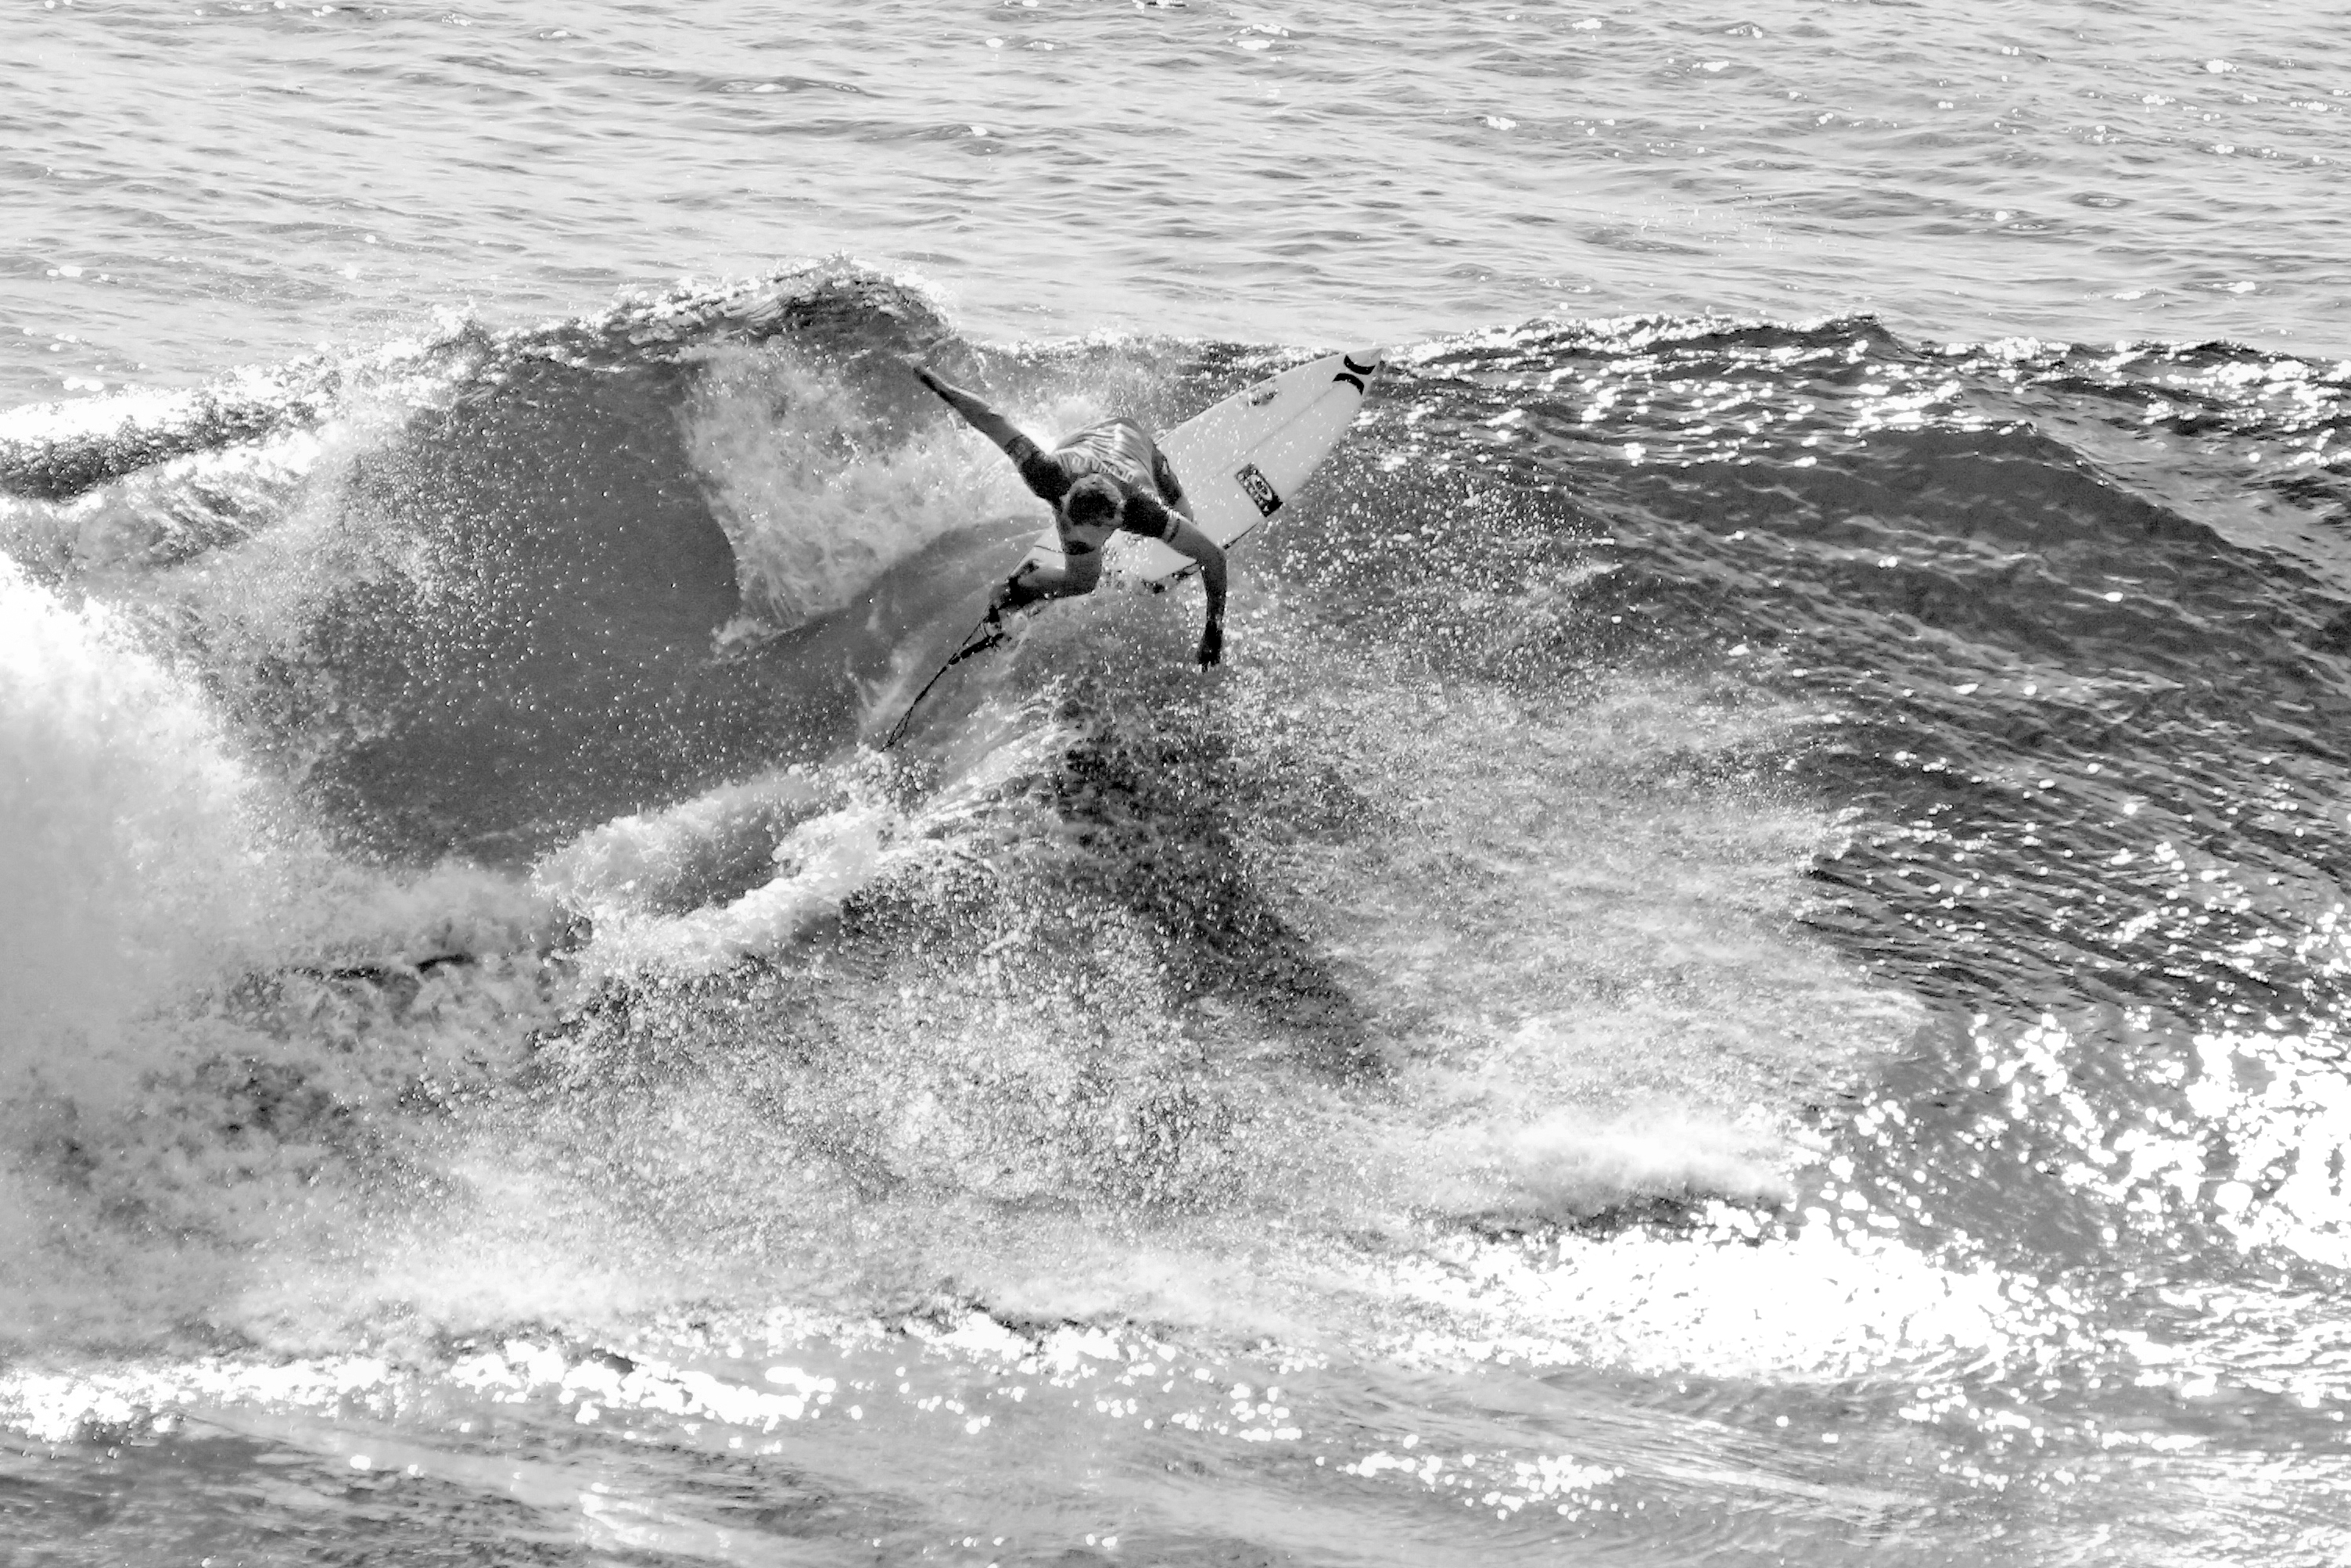 julian_wilson_by_leesa_maree_geere_1bw